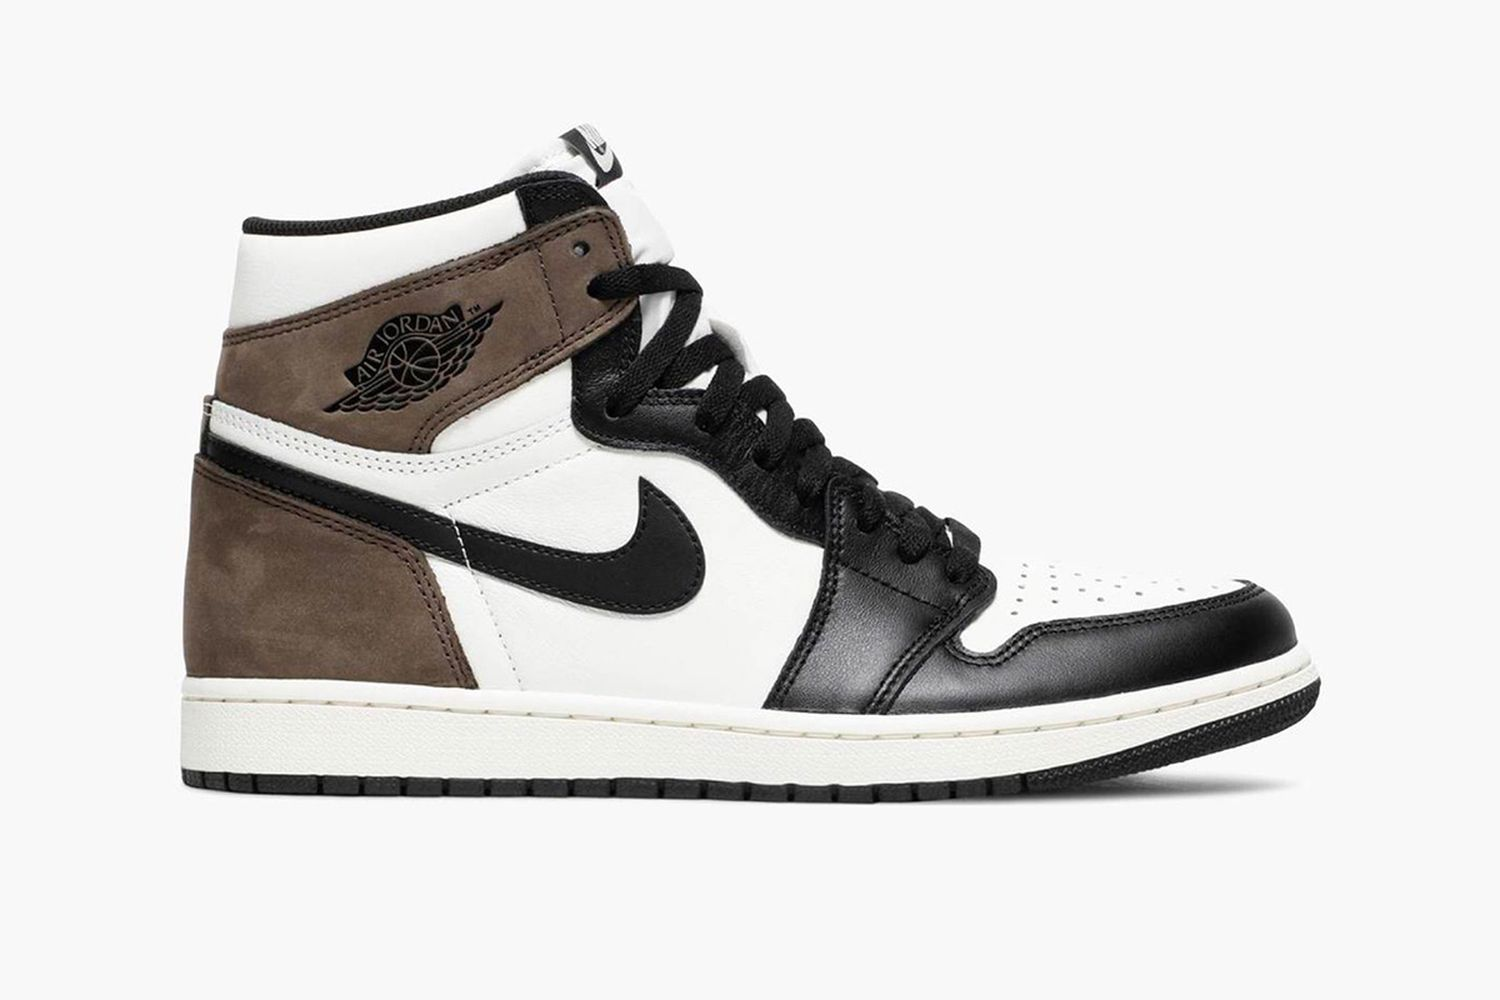 10 of the Best Jordan 1 High Colorways for 2021